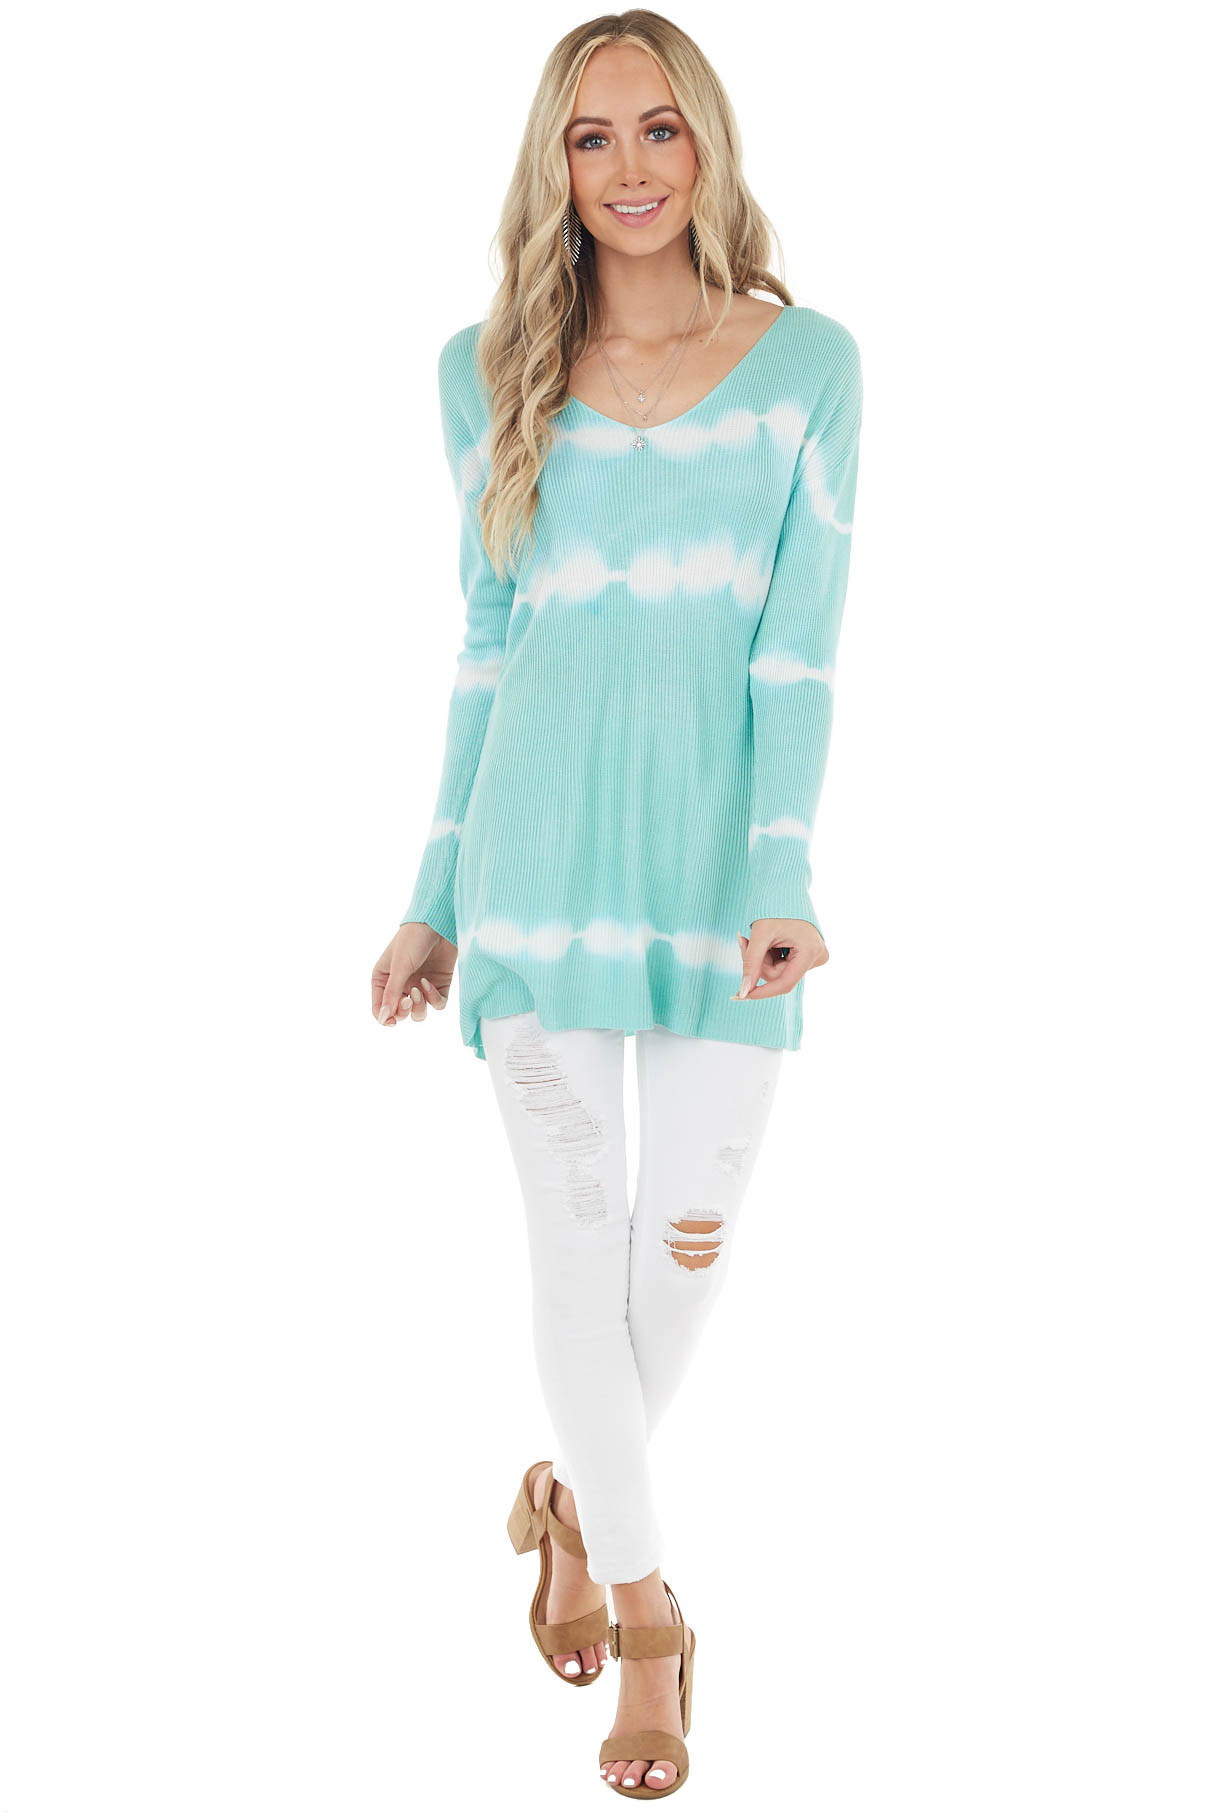 Aqua Striped Tie Dye Ribbed Knit Top with Long Sleeves